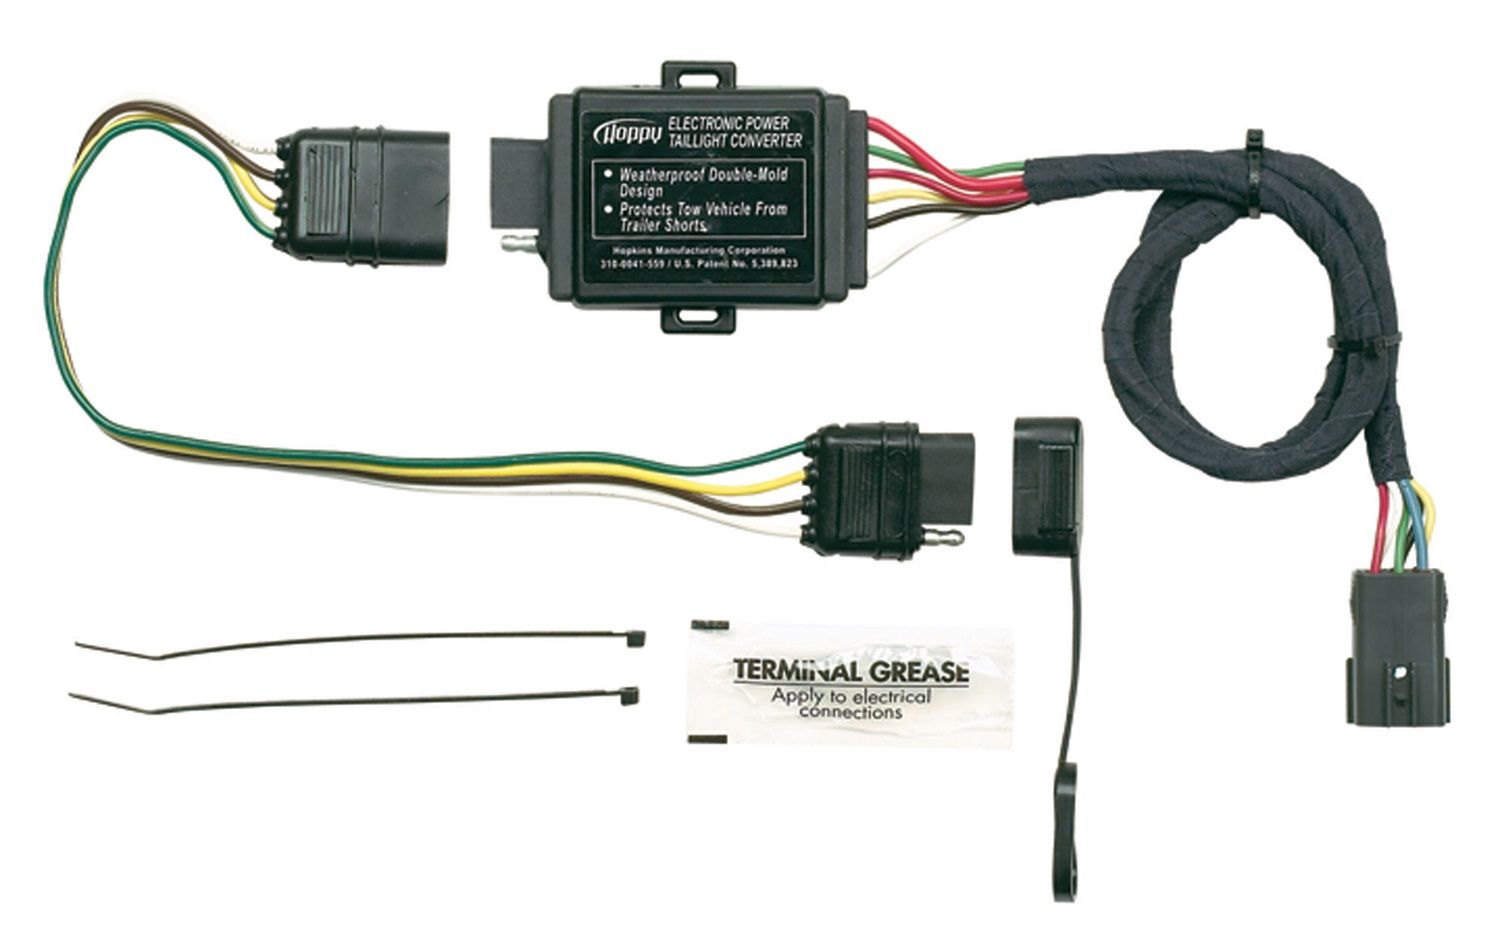 hight resolution of hopkins towing solution 11143875 trailer wire harness landscape trailer wiring harness featherlite trailer wiring harness